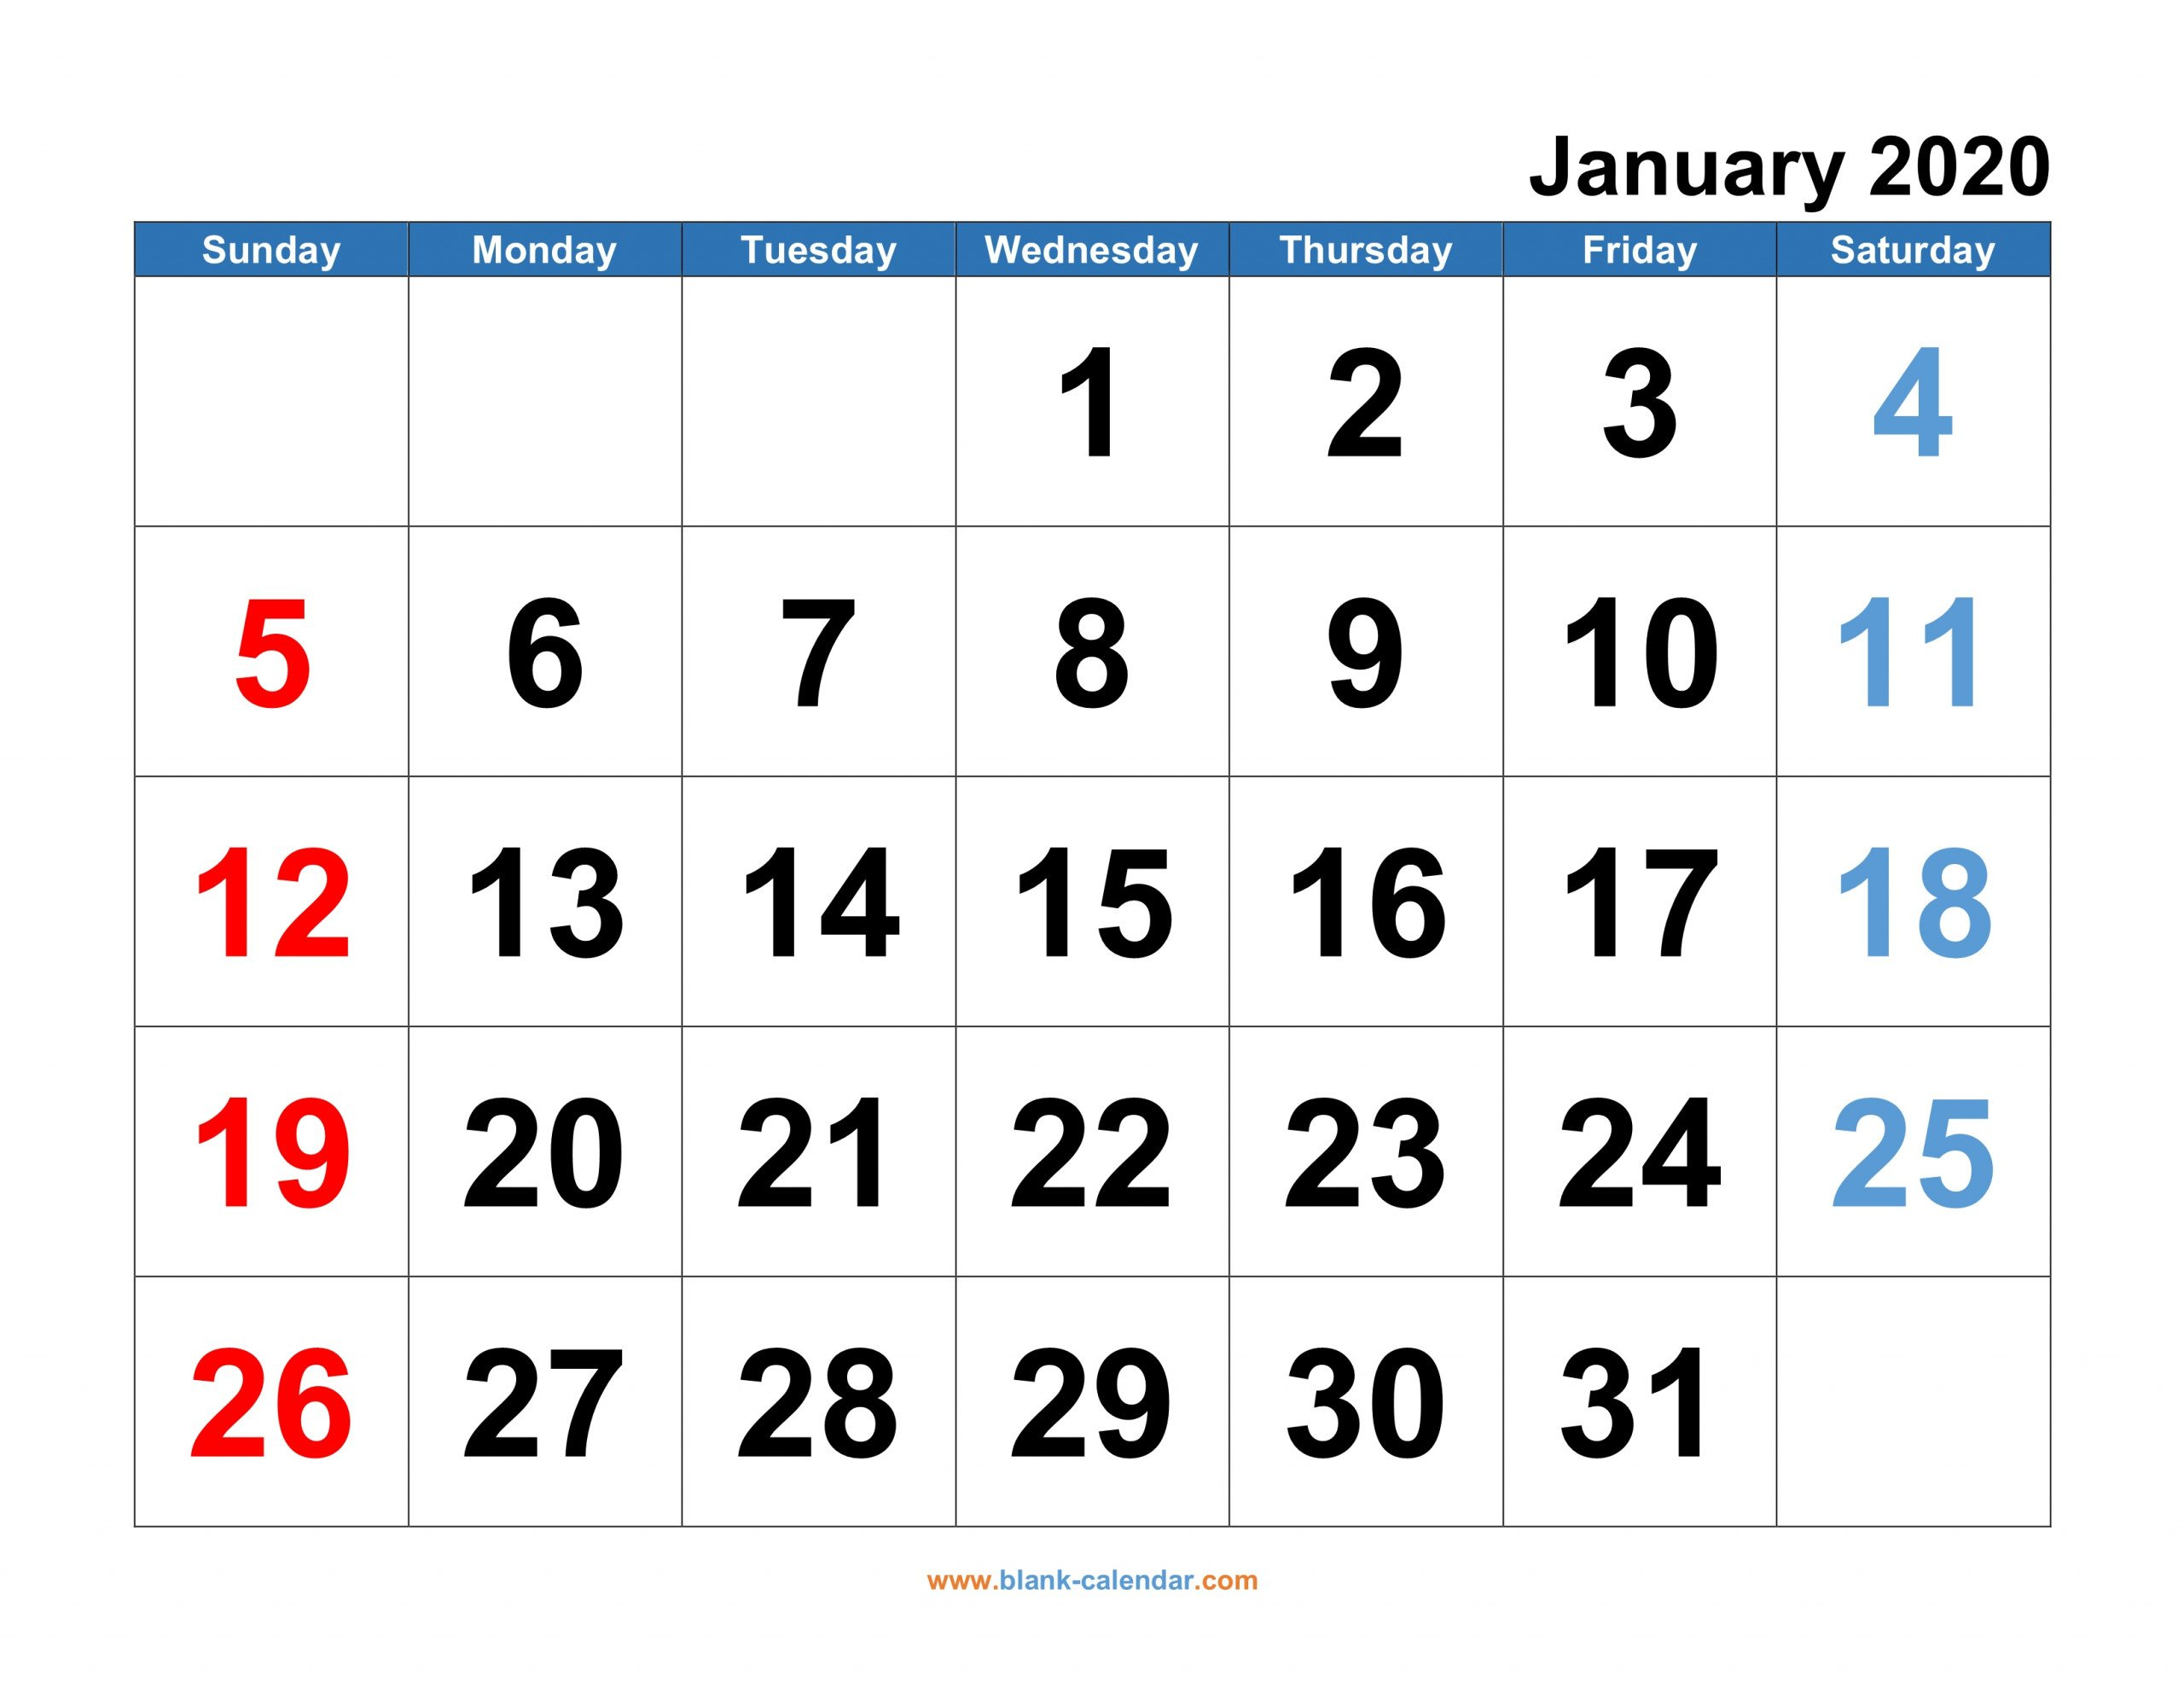 Monthly Calendar 2020 | Free Download, Editable And I Need A Monthly Calendar That I Can Edit